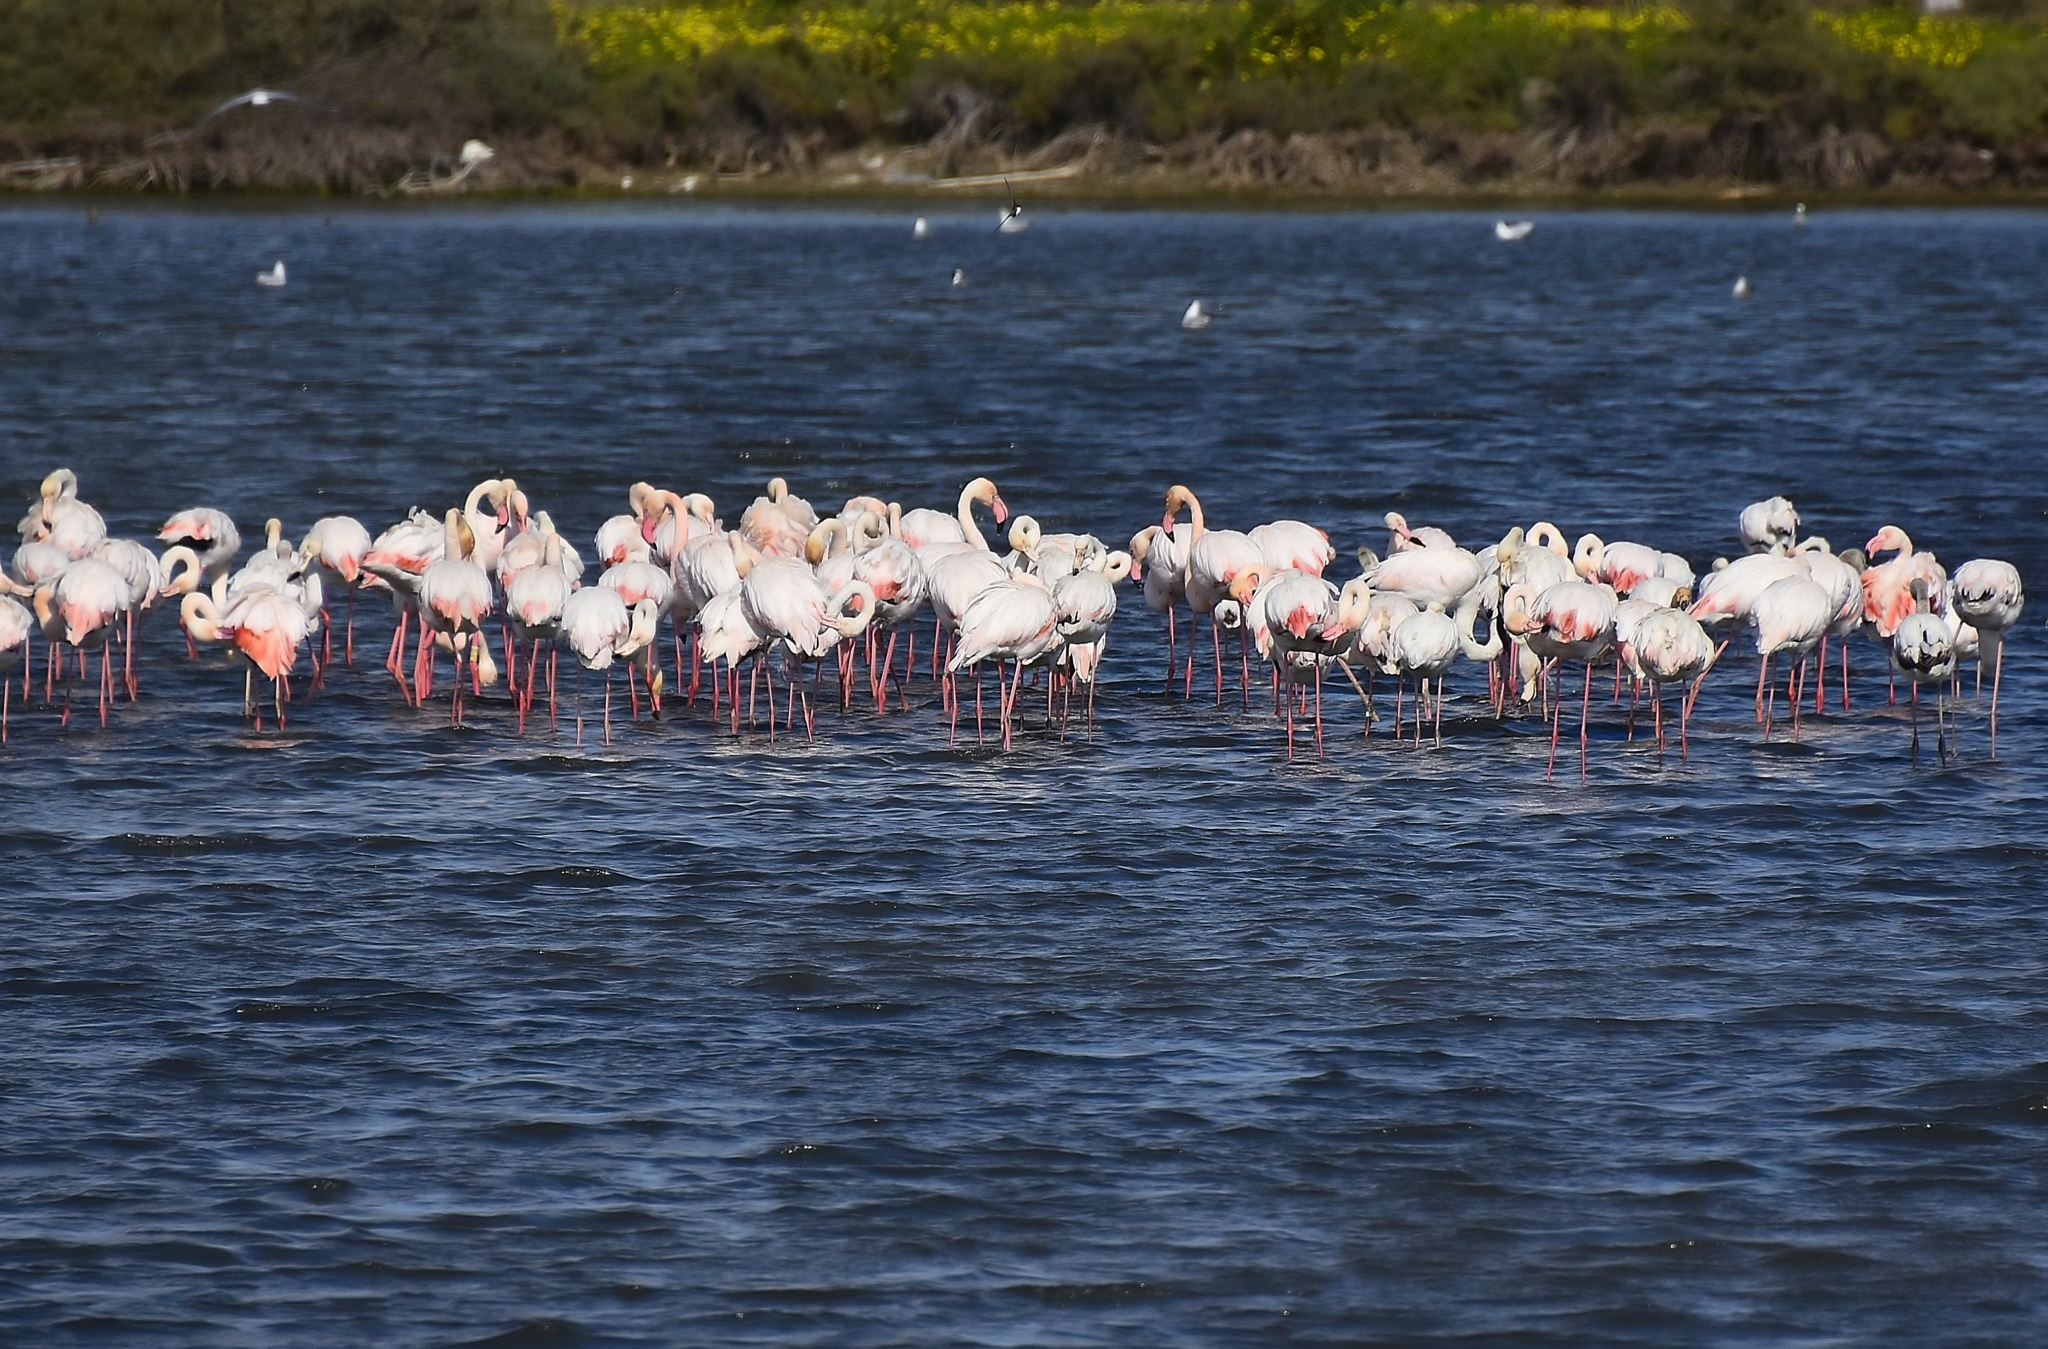 FLAMINGOS by Luis Salmonete